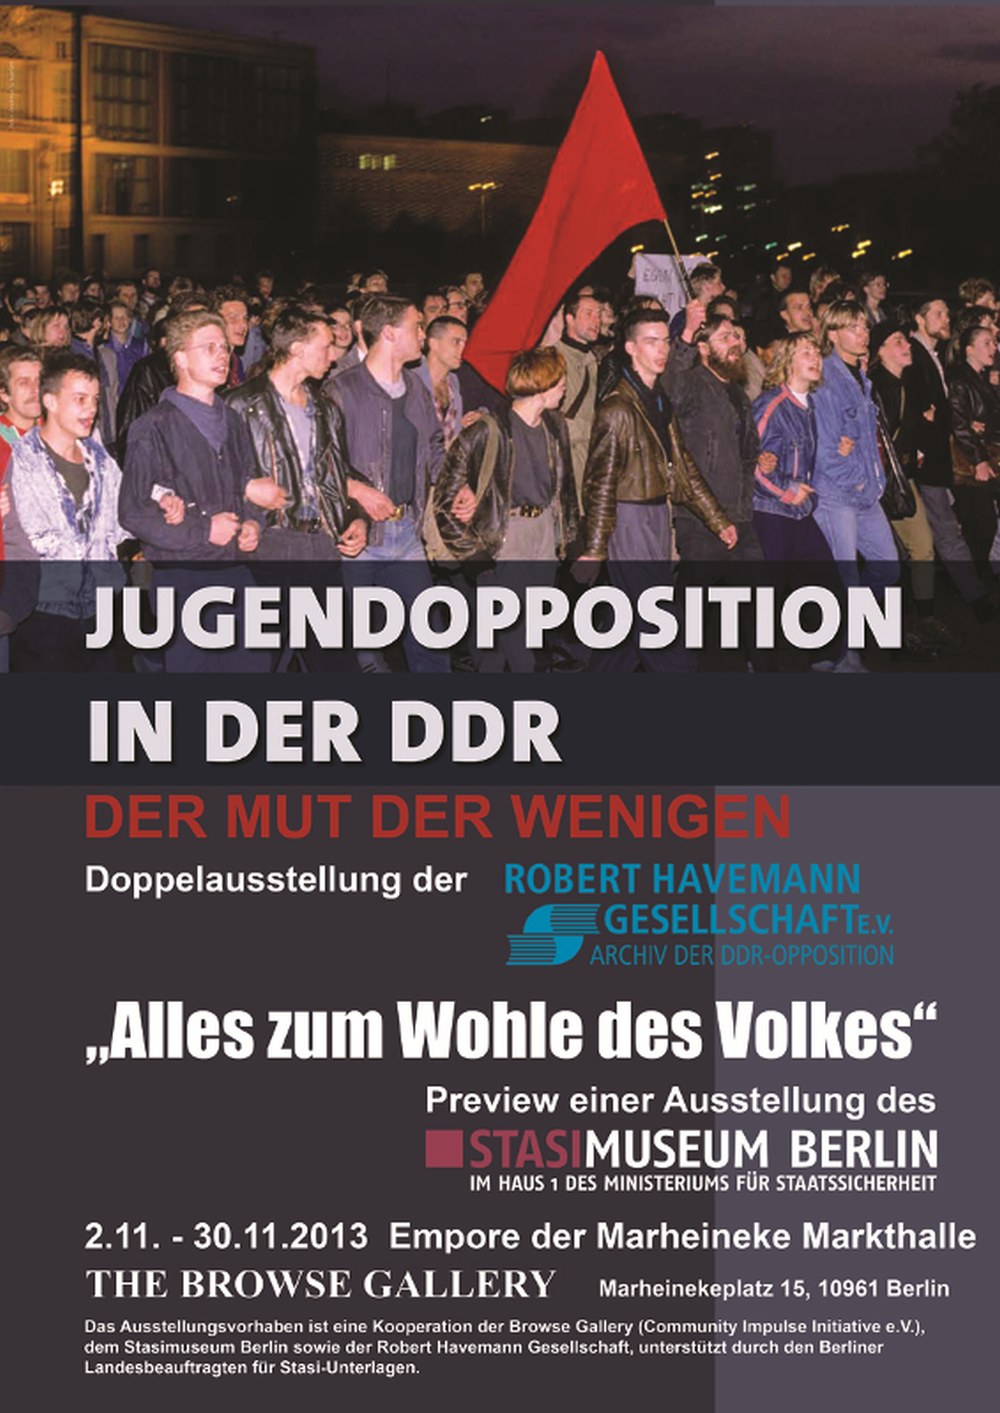 berlinspiriert-ddpropposition